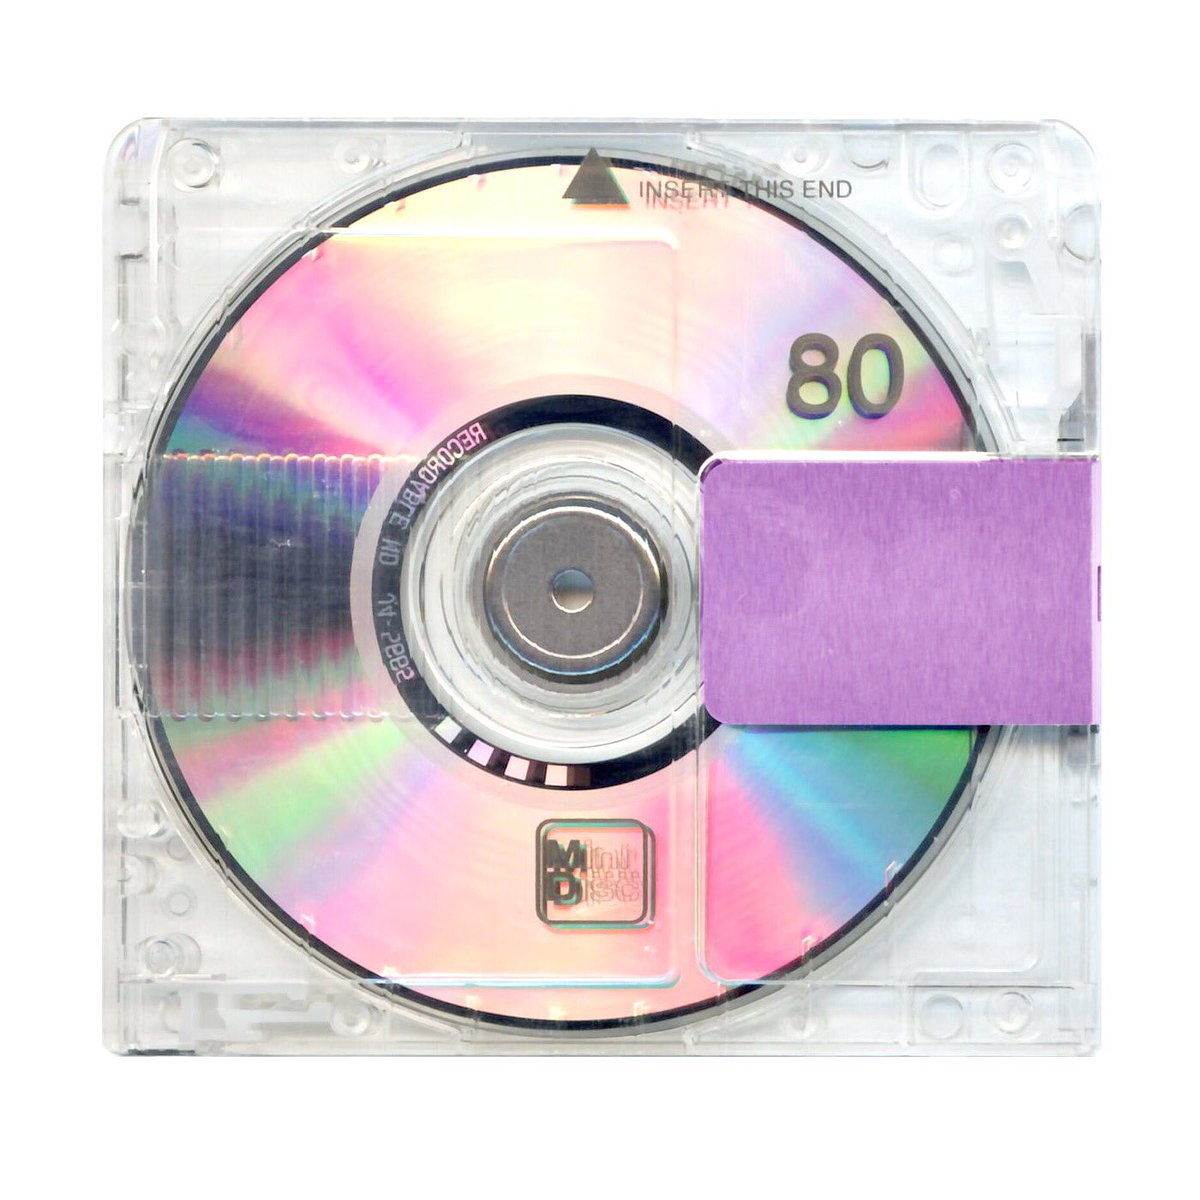 Did Kanye West Just Announce a New Album Called 'YANDHI'?